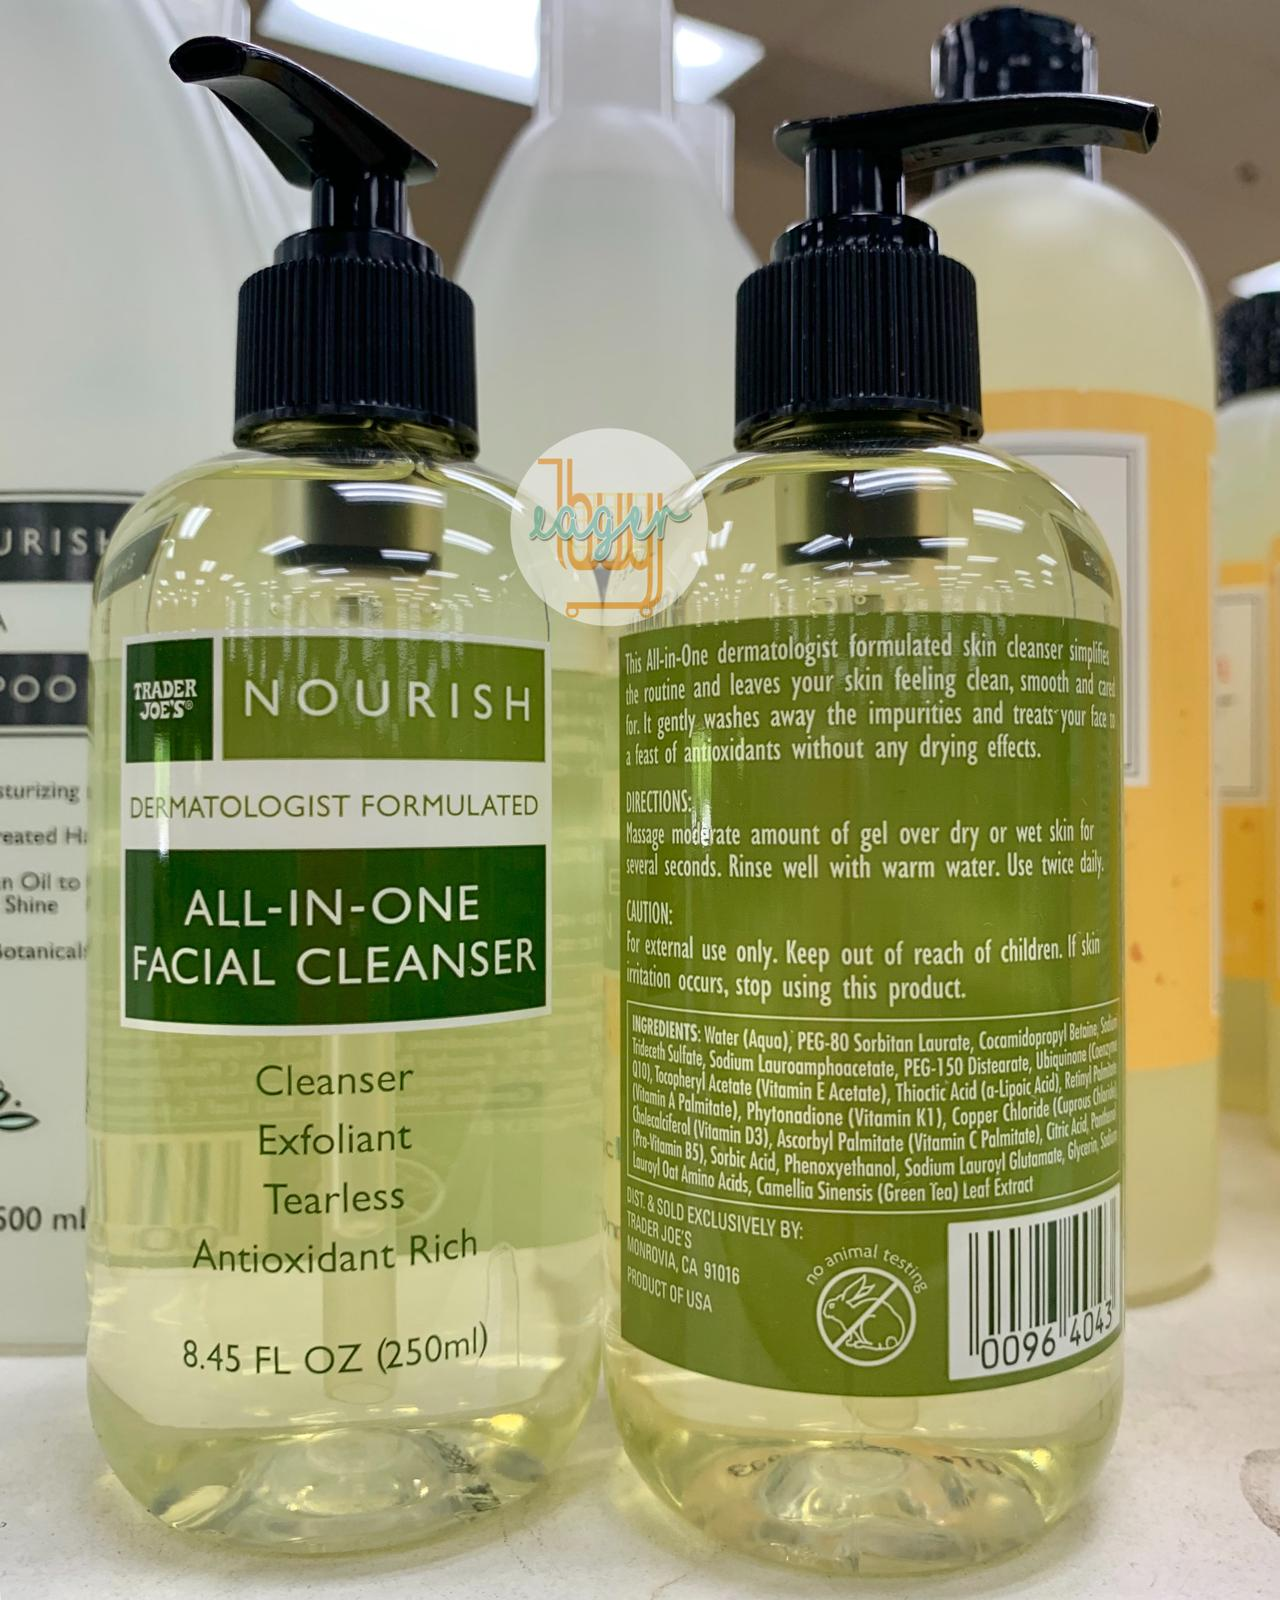 Nourish All-In-One Facial Cleanser by Trader Joe's #7